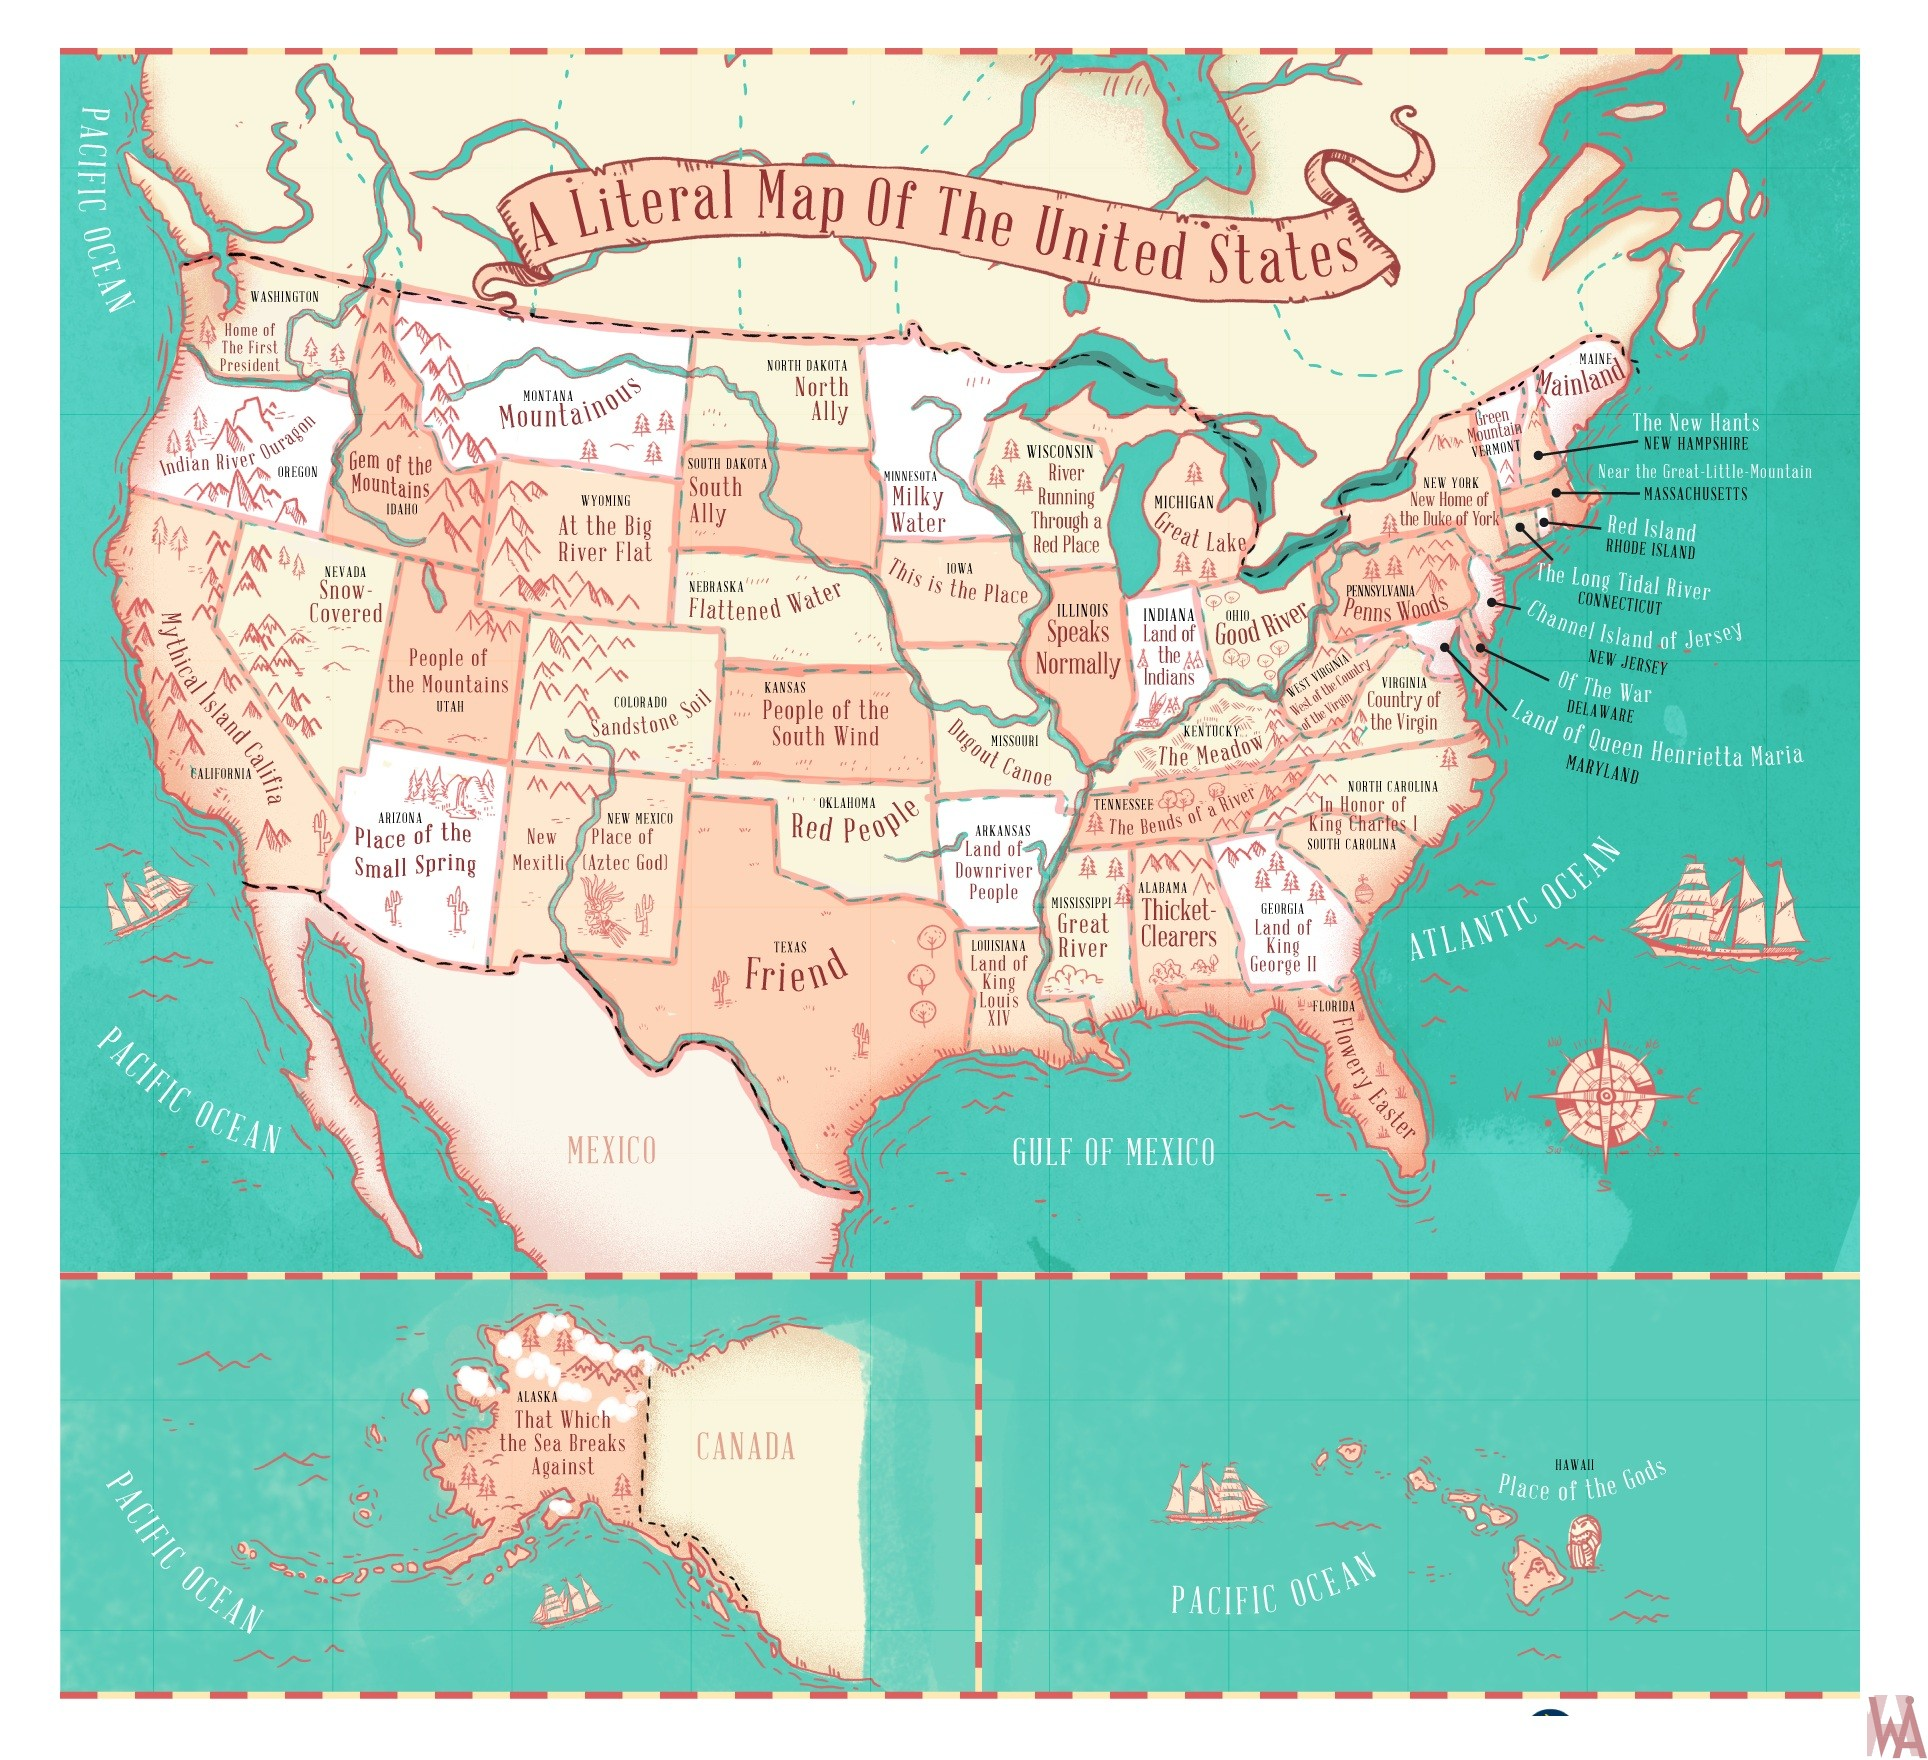 Literal map of the United States with Famous Name